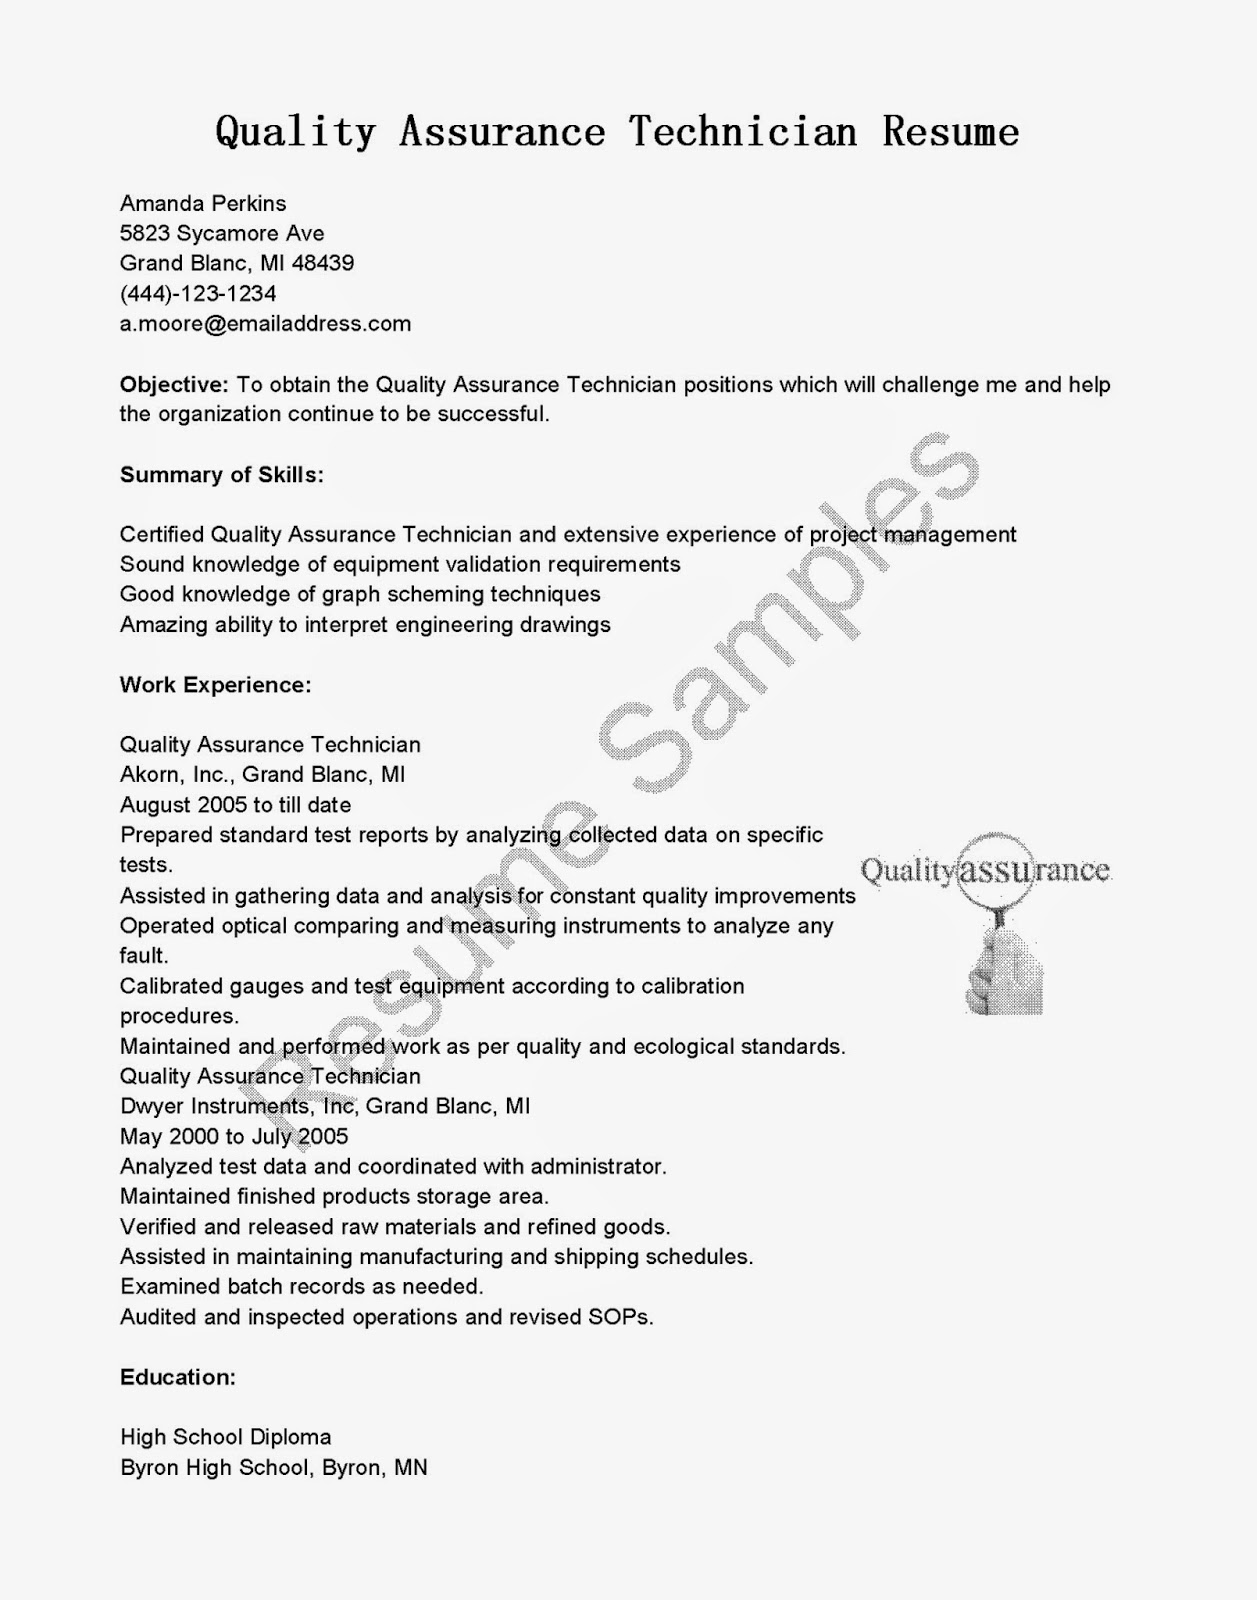 hvac resume examples download sizes 150 150 hvac tech resume objective hvac technician resume objective hvac